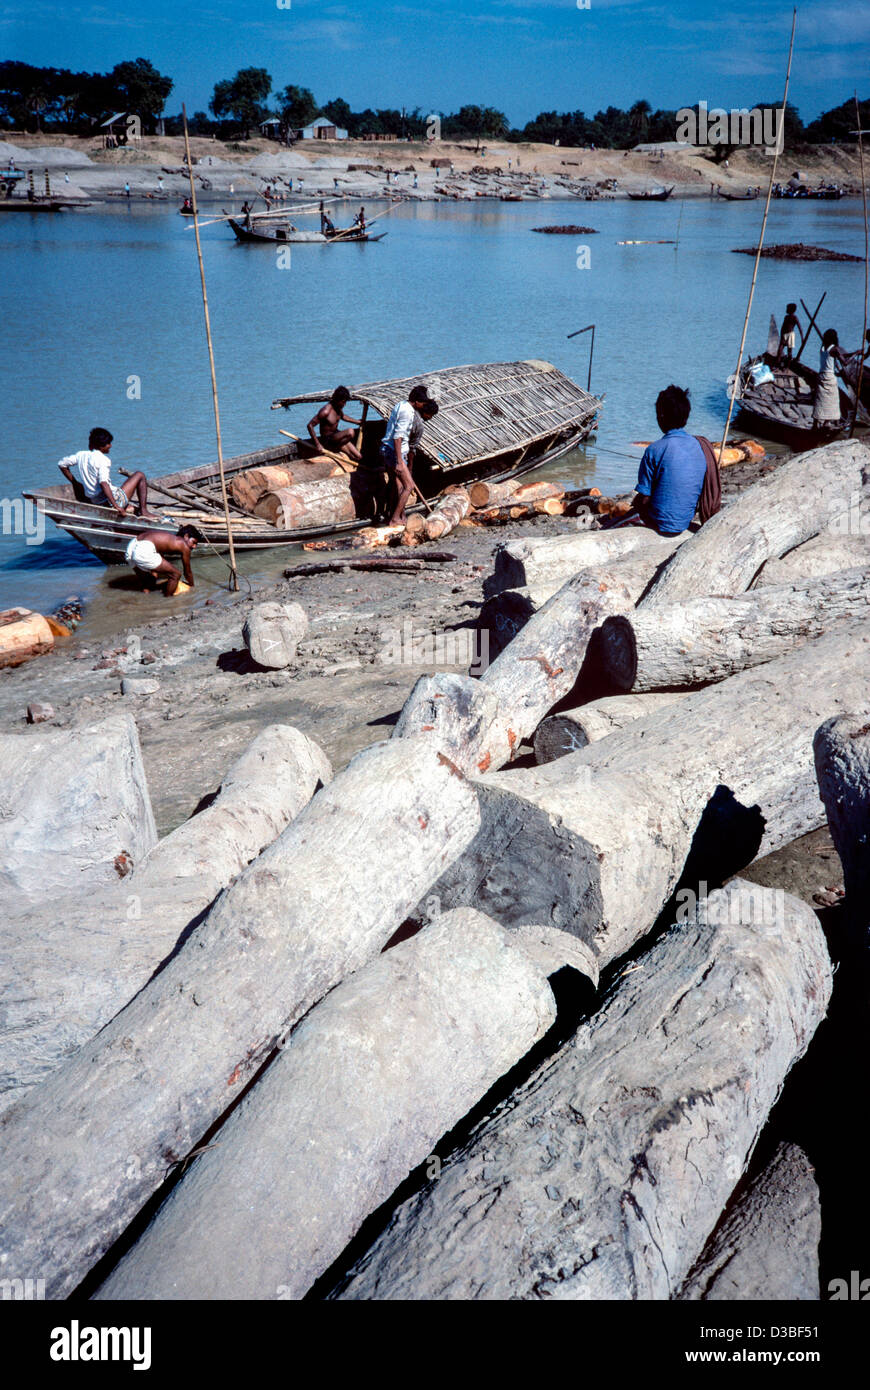 Hardwood timber brought down from the India / Burma border, possibly illegally felled. Tangail District, Bangladesh - Stock Image